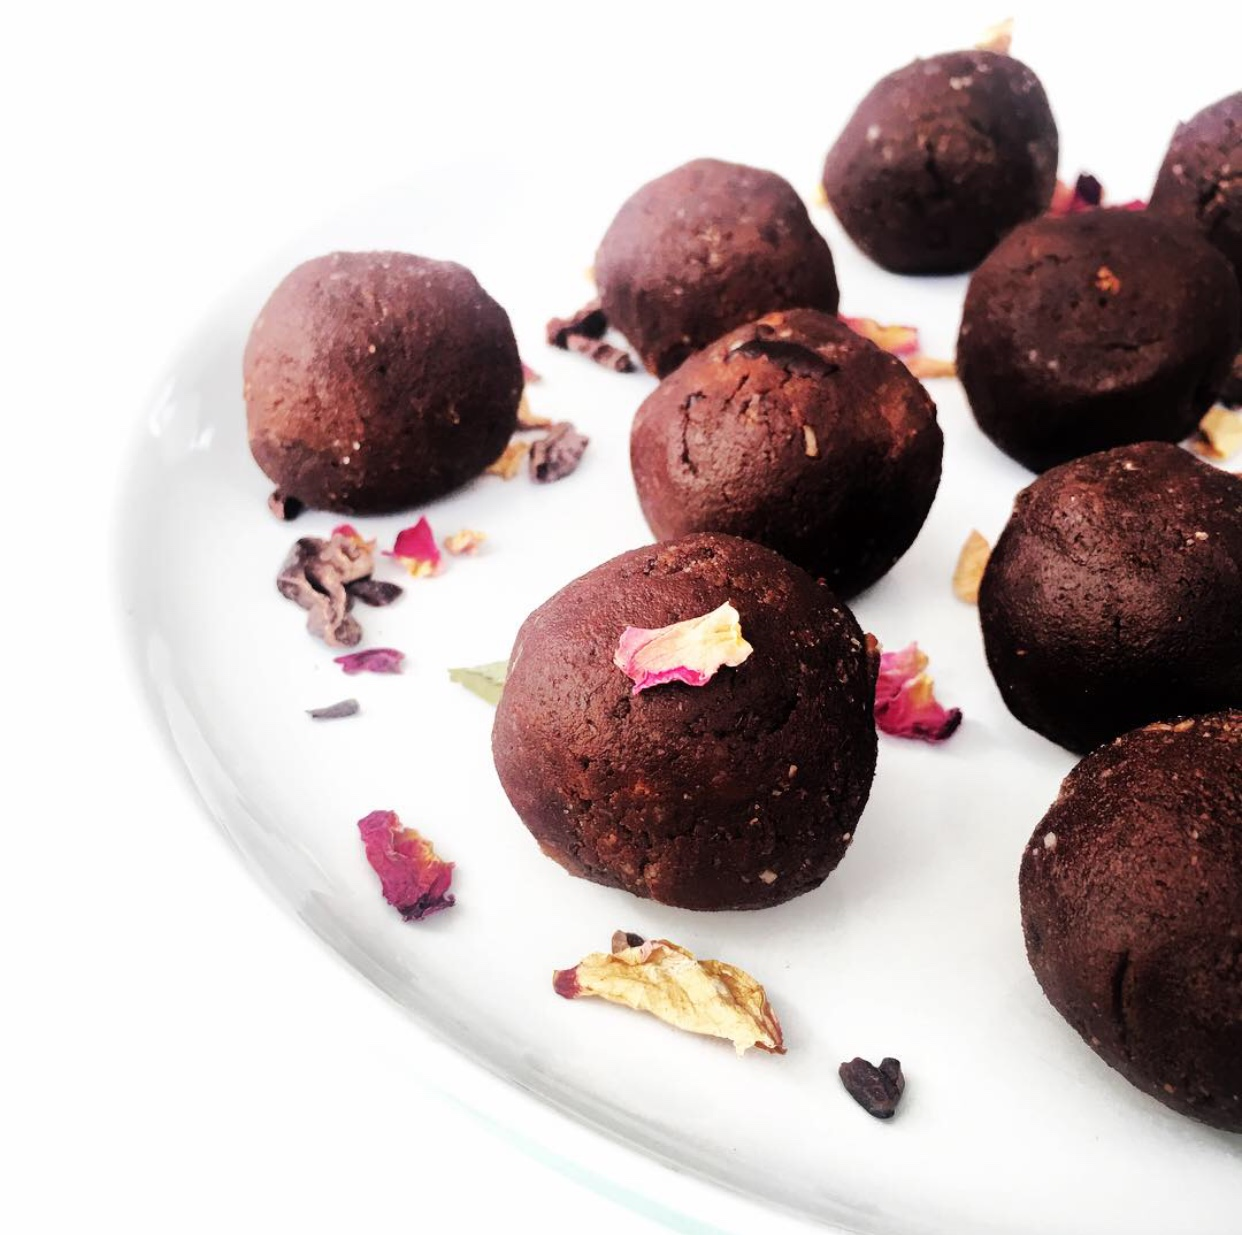 Raw, sexy lovers truffles with dark cacao and delicately sweetened with medjool dates. Add some Moon Juice Sex Dust, Orchard St Lovers elixir or some cayenne to spice up date night this Valentine's xx #vegan